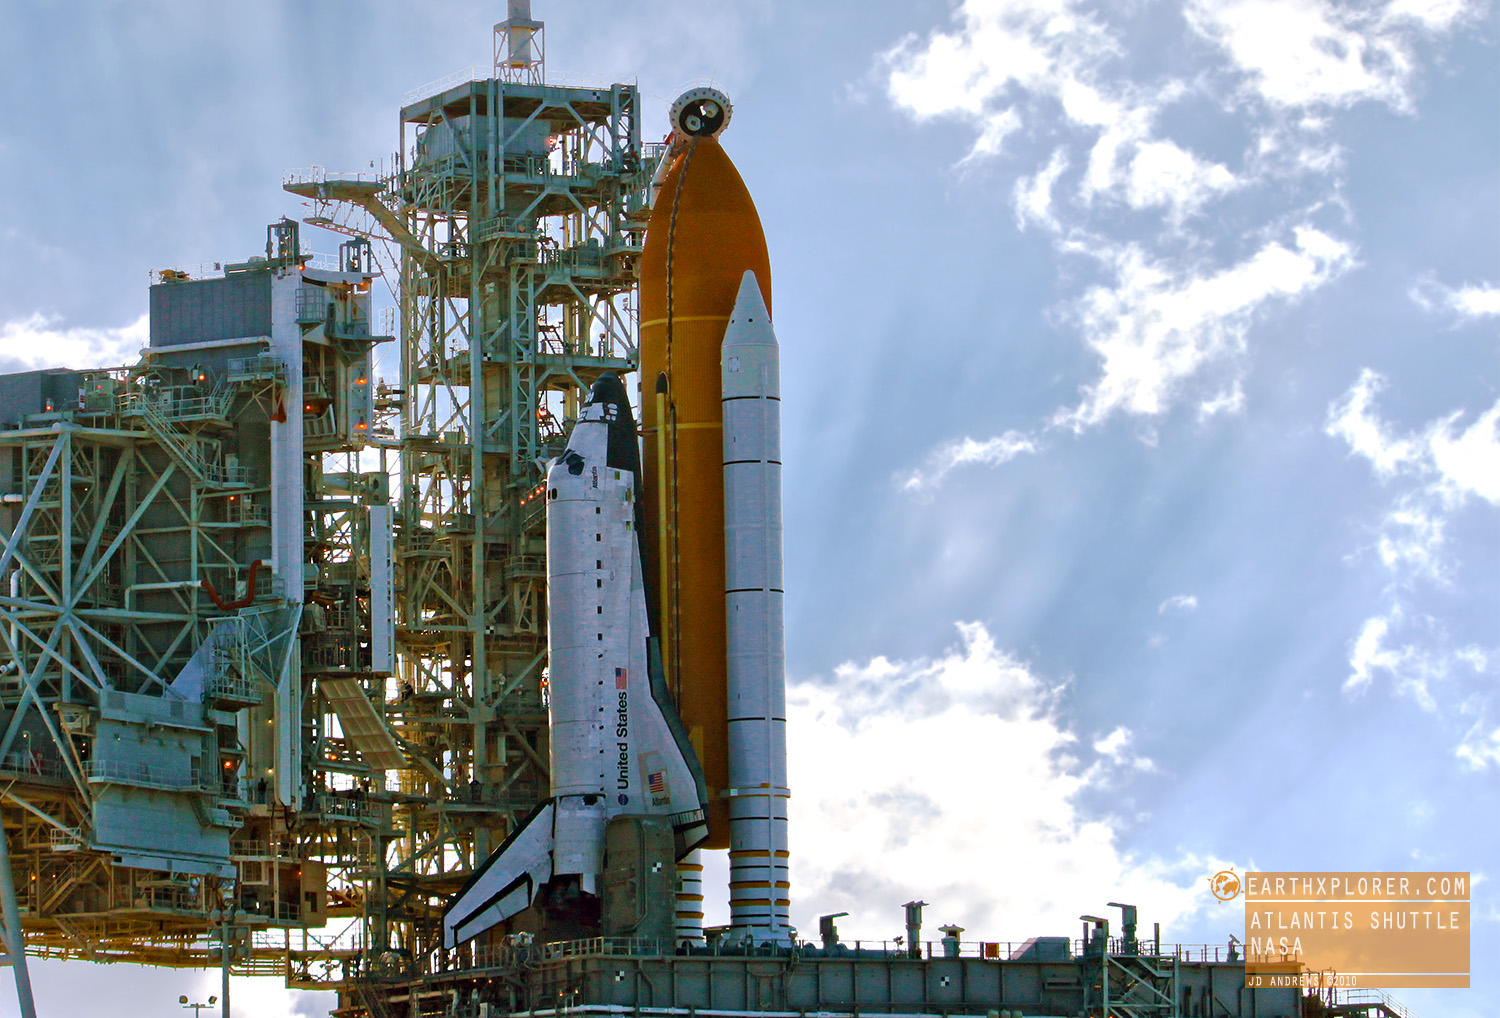 From the NASA tweet-up held at The Kennedy Space Center located in Central Florida - I had the amazing opportunity to see one of the last shuttle launches back in 2010. It was incredible!